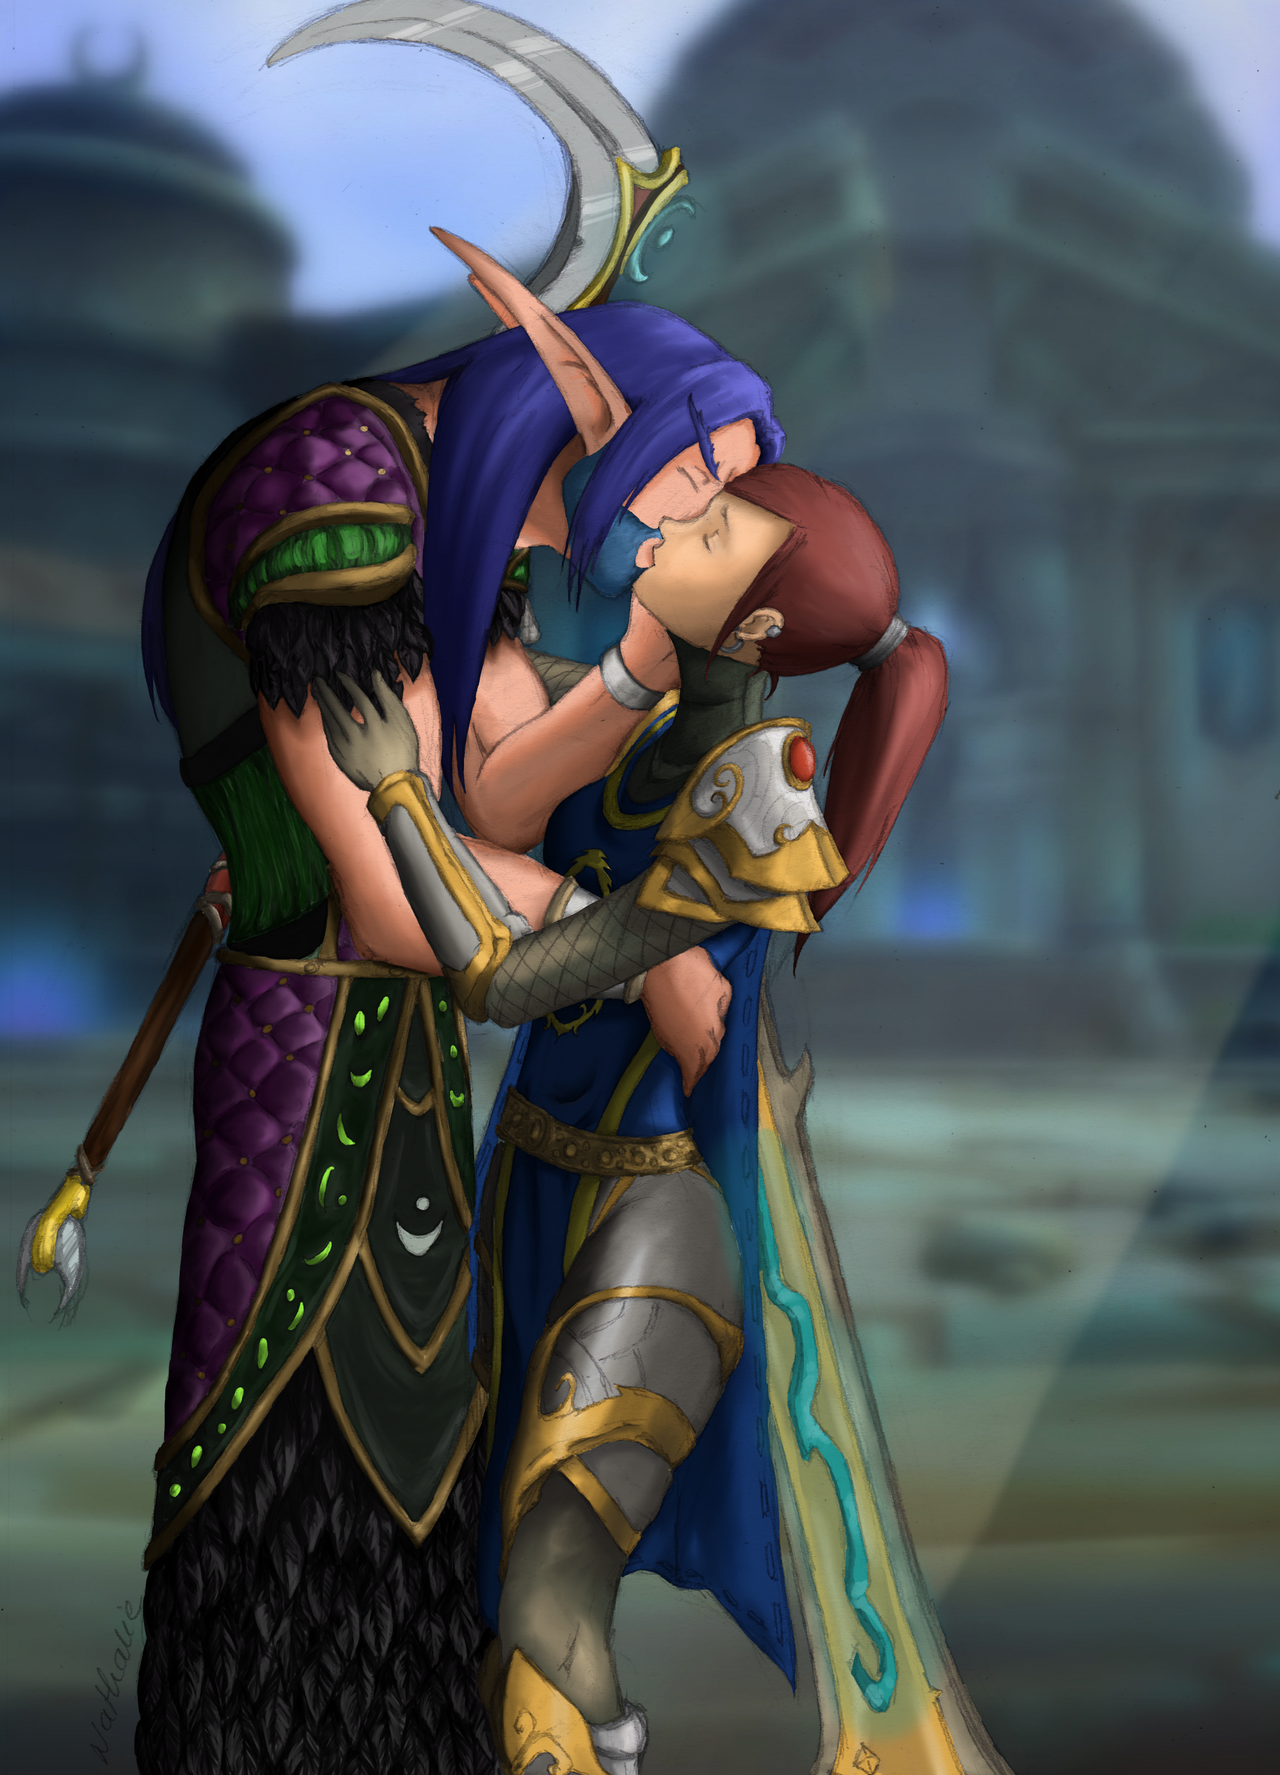 Wow human and night elf exploited pics